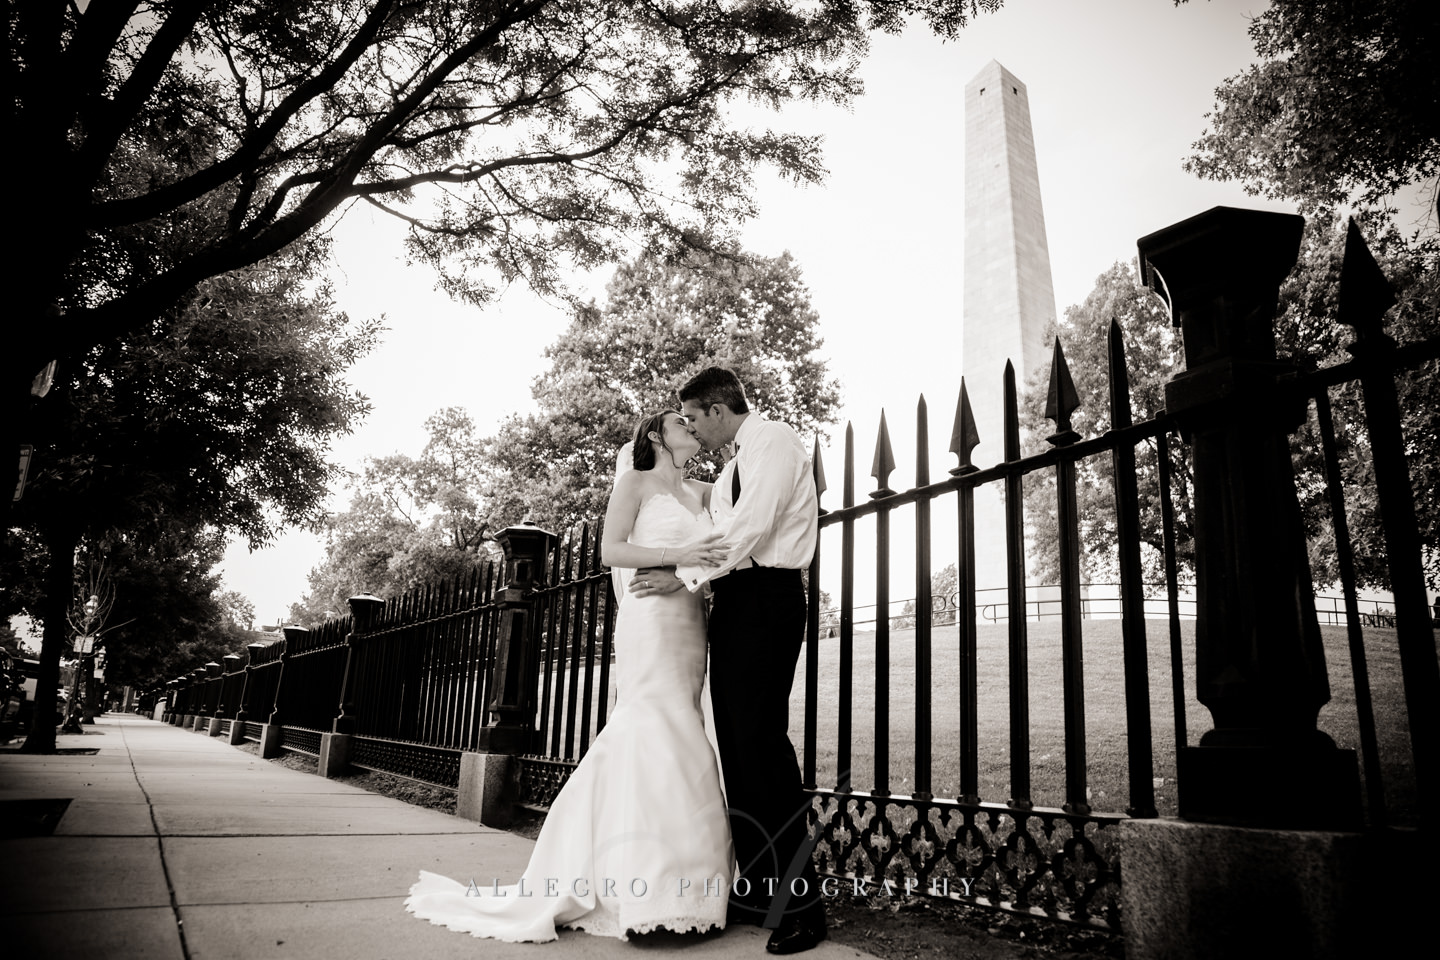 bunker hill monument bride and groom  photo by Allegro Photography